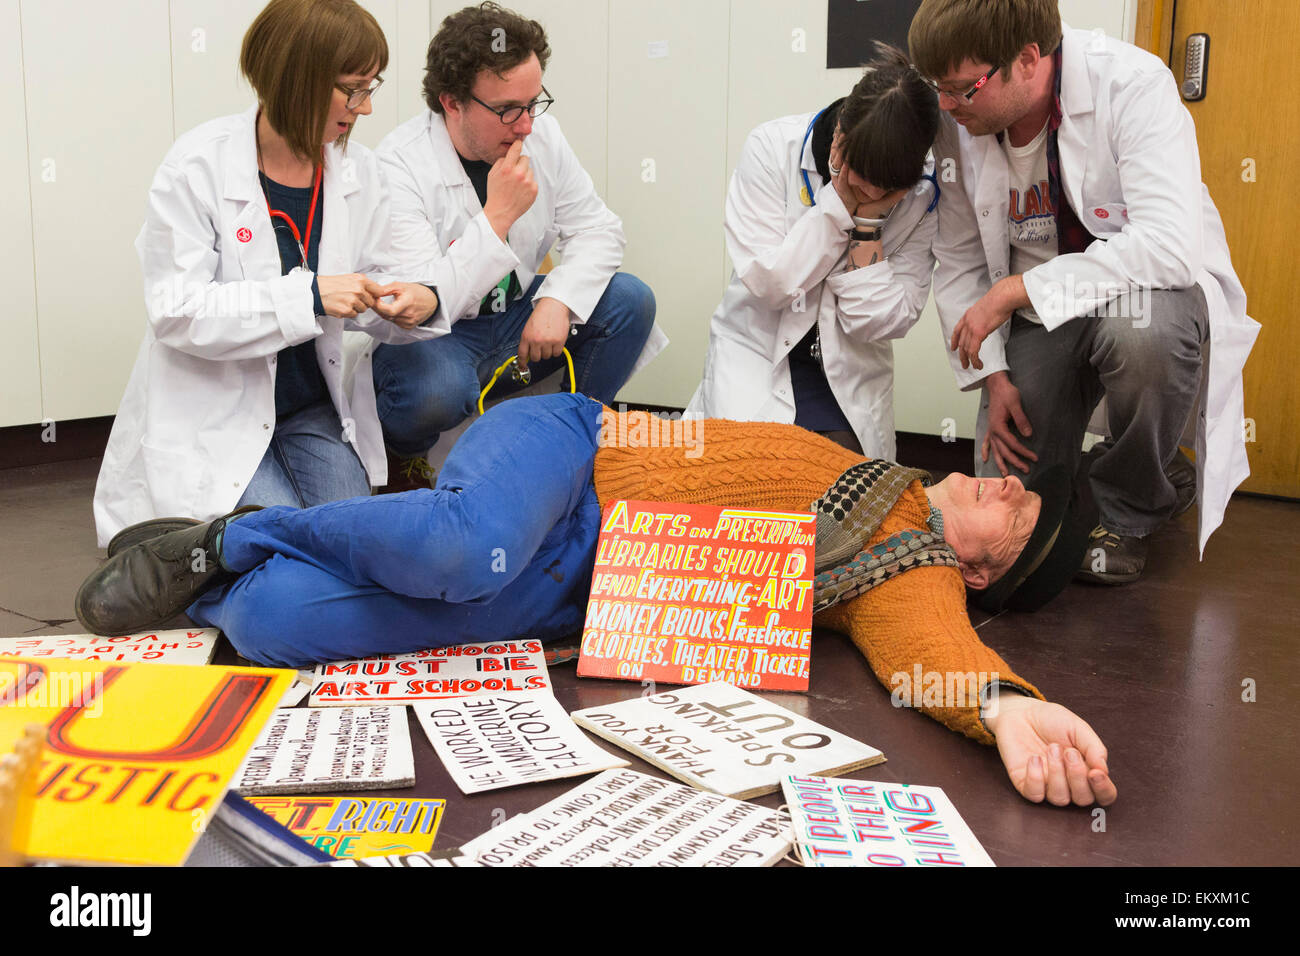 London, UK. 13 April 2015. Artist Bob and Roberta Smith (orange jumper) poses with BA and MA fine art students  - Stock Image